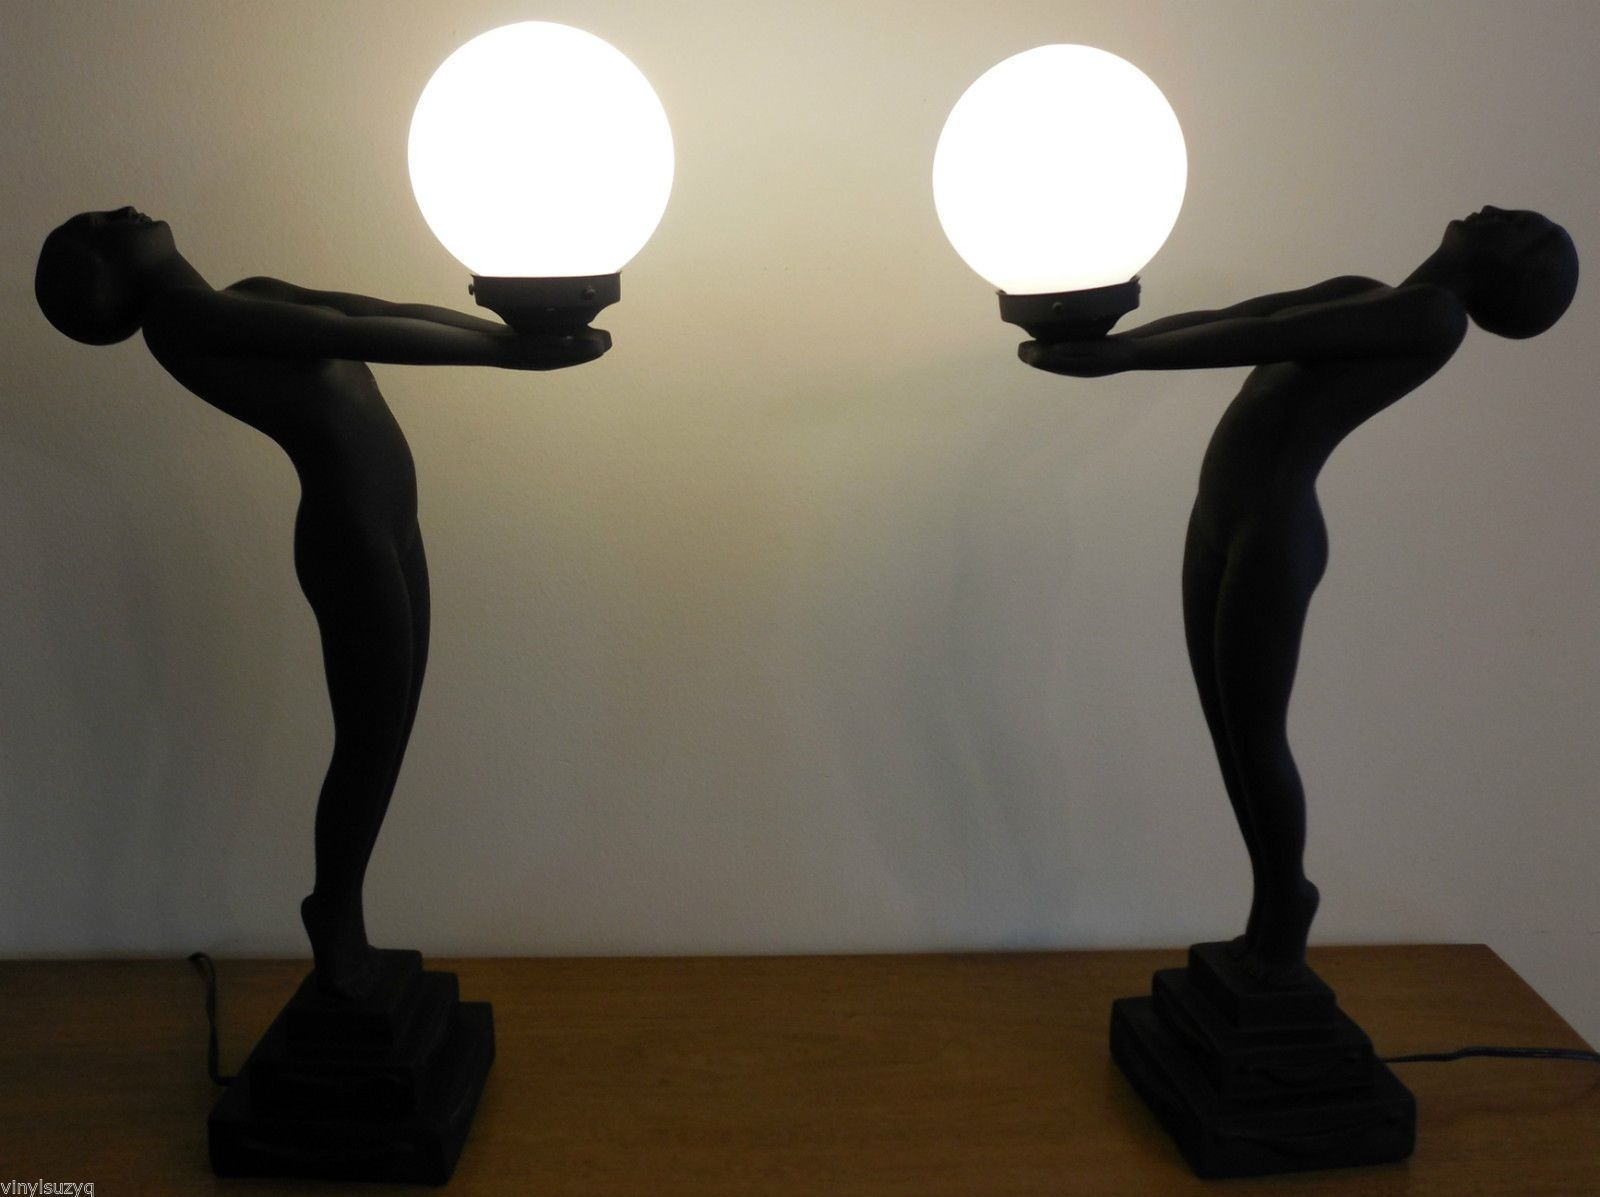 Pair of art deco style nude lady table lamps white globes black pair of art deco style nude lady table lamps white globes black figures geotapseo Gallery